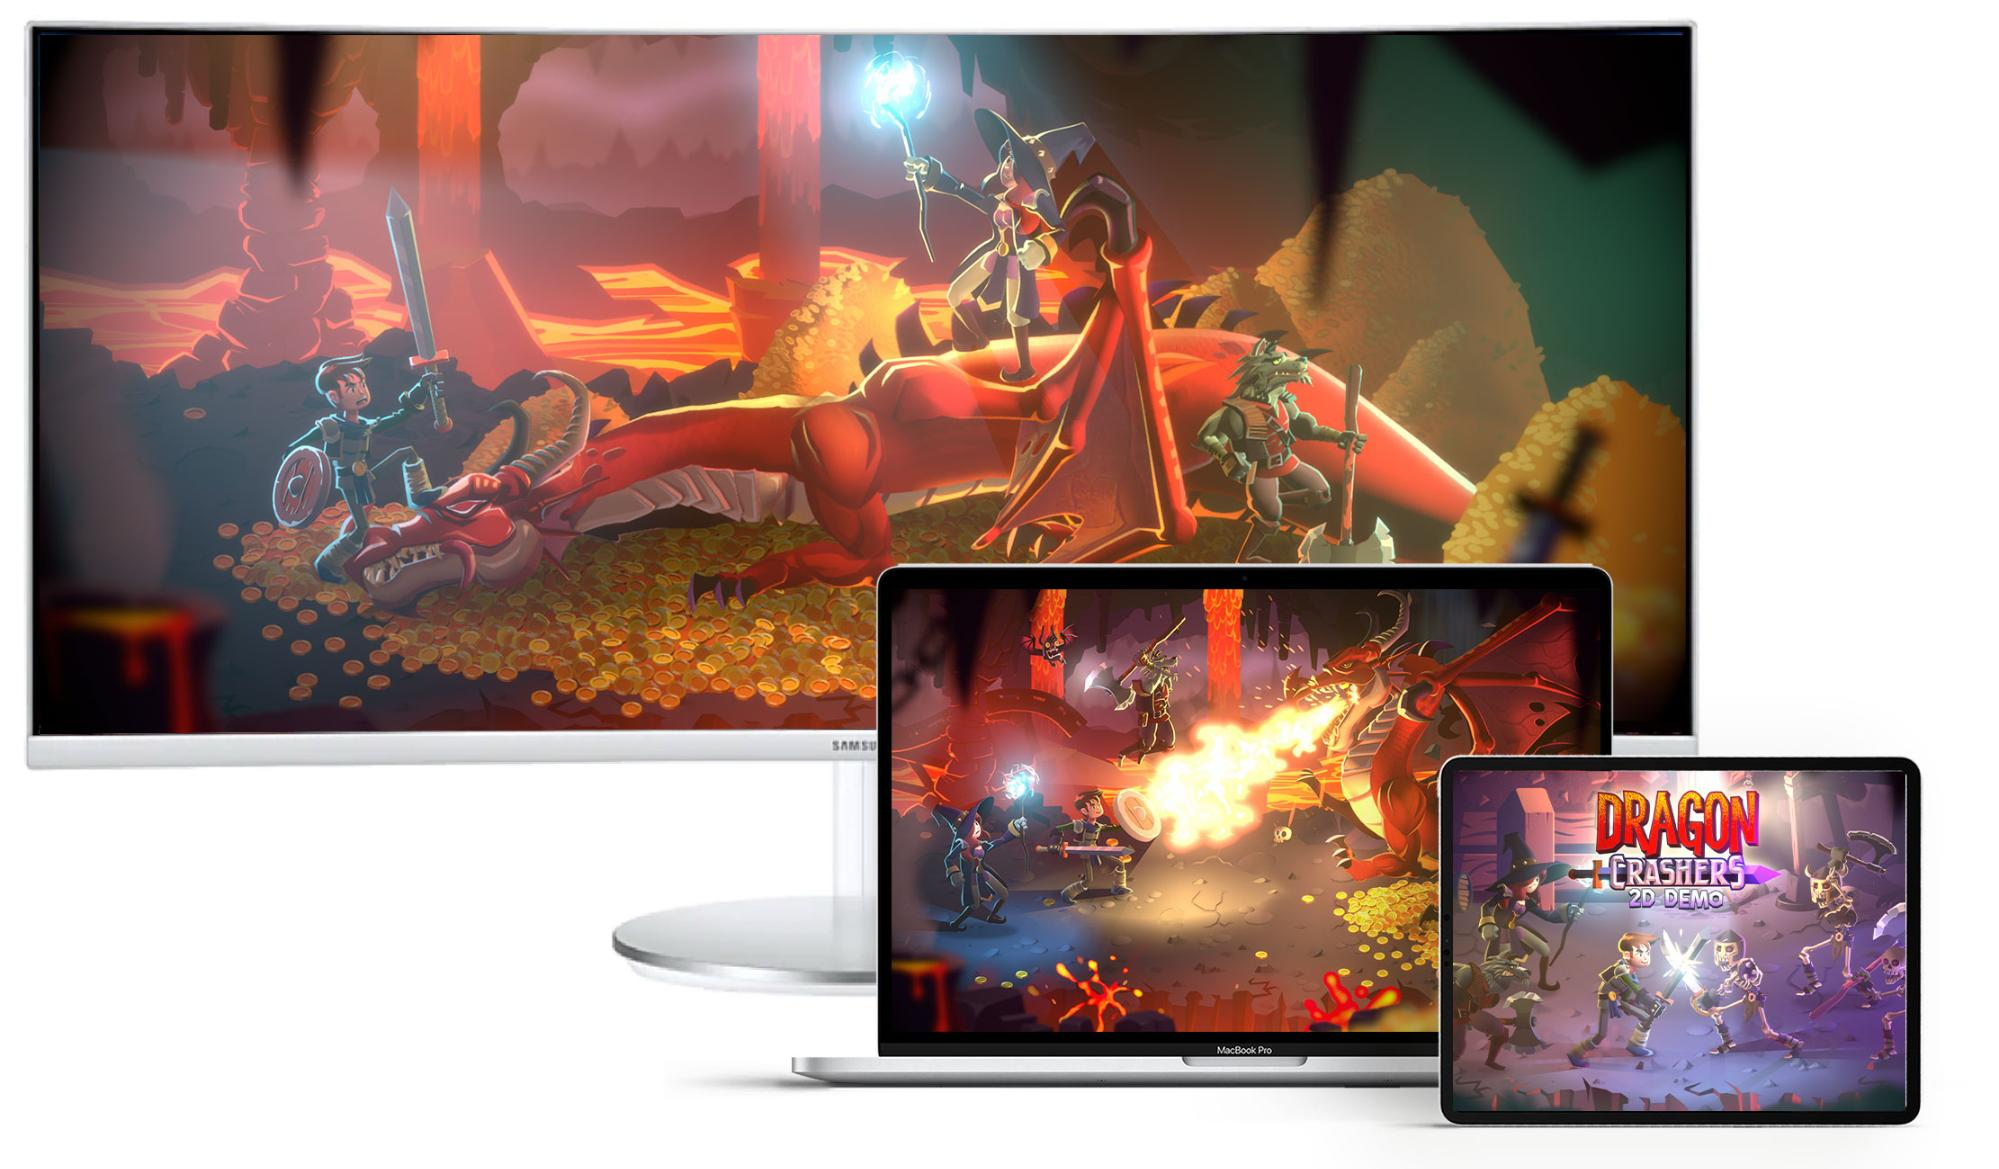 Dragon Crashers Backgrounds on PC, Laptop and Tablet.